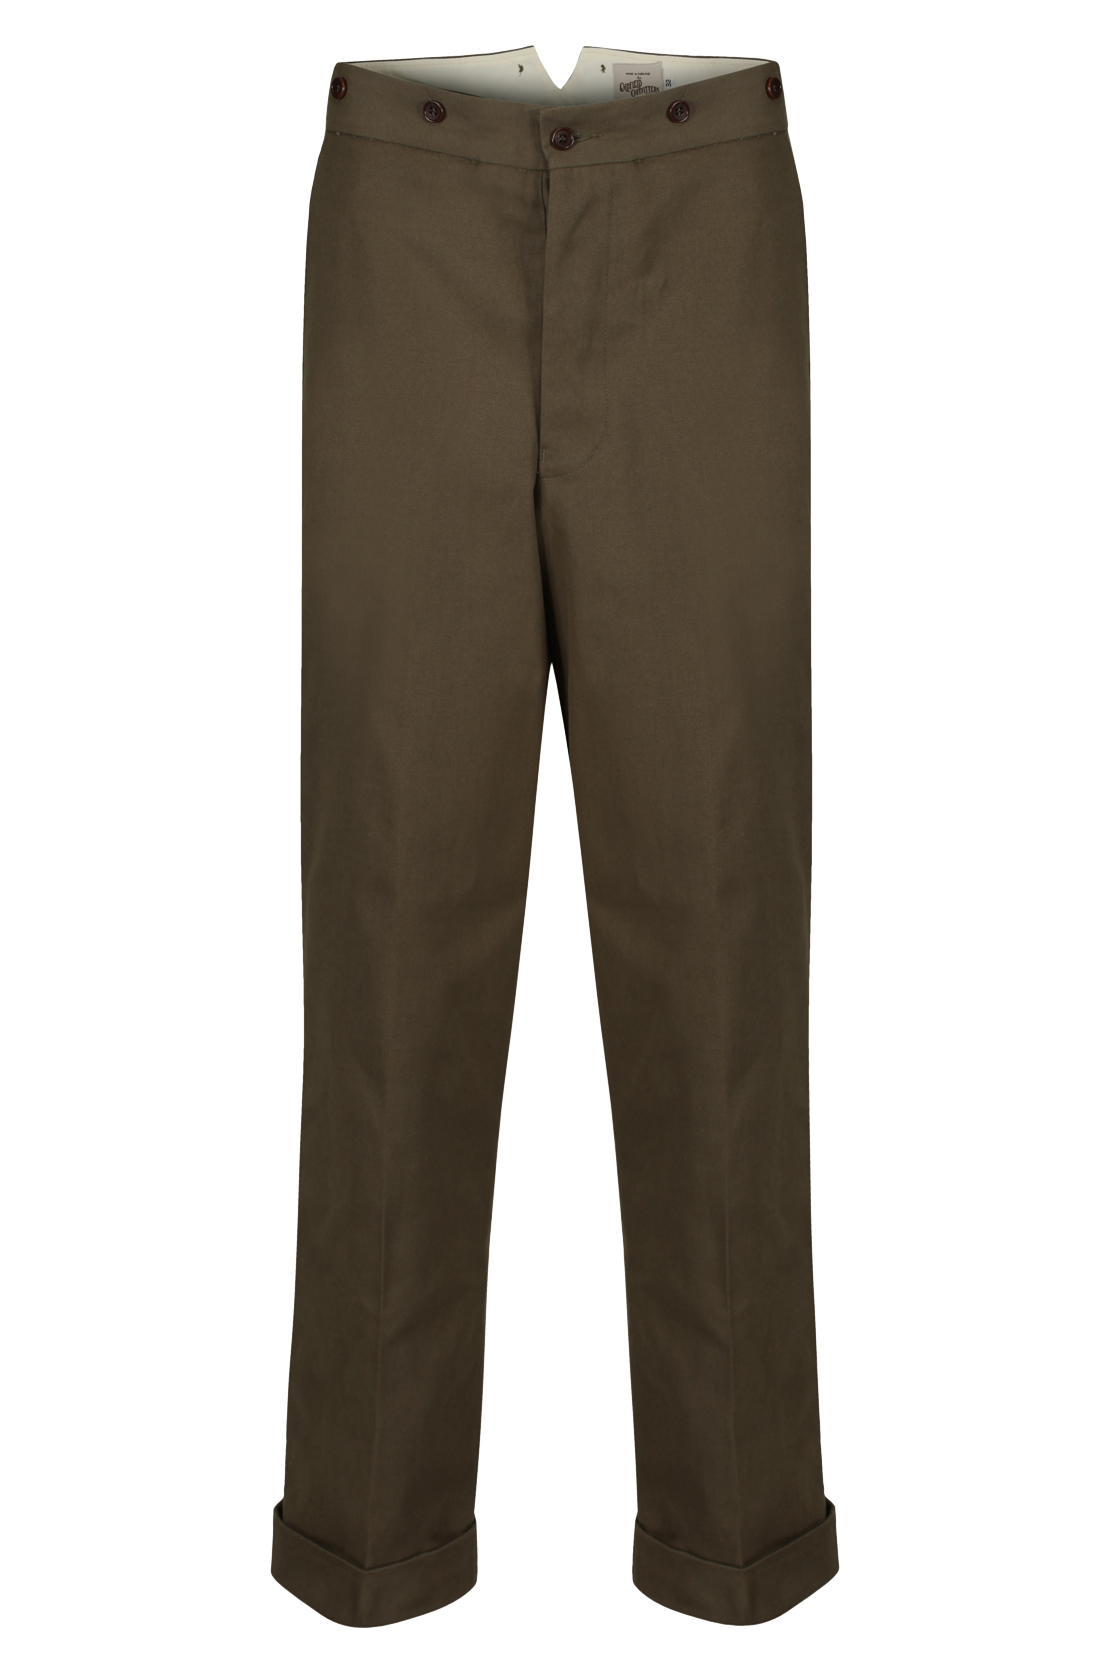 The Claude resistance trouser